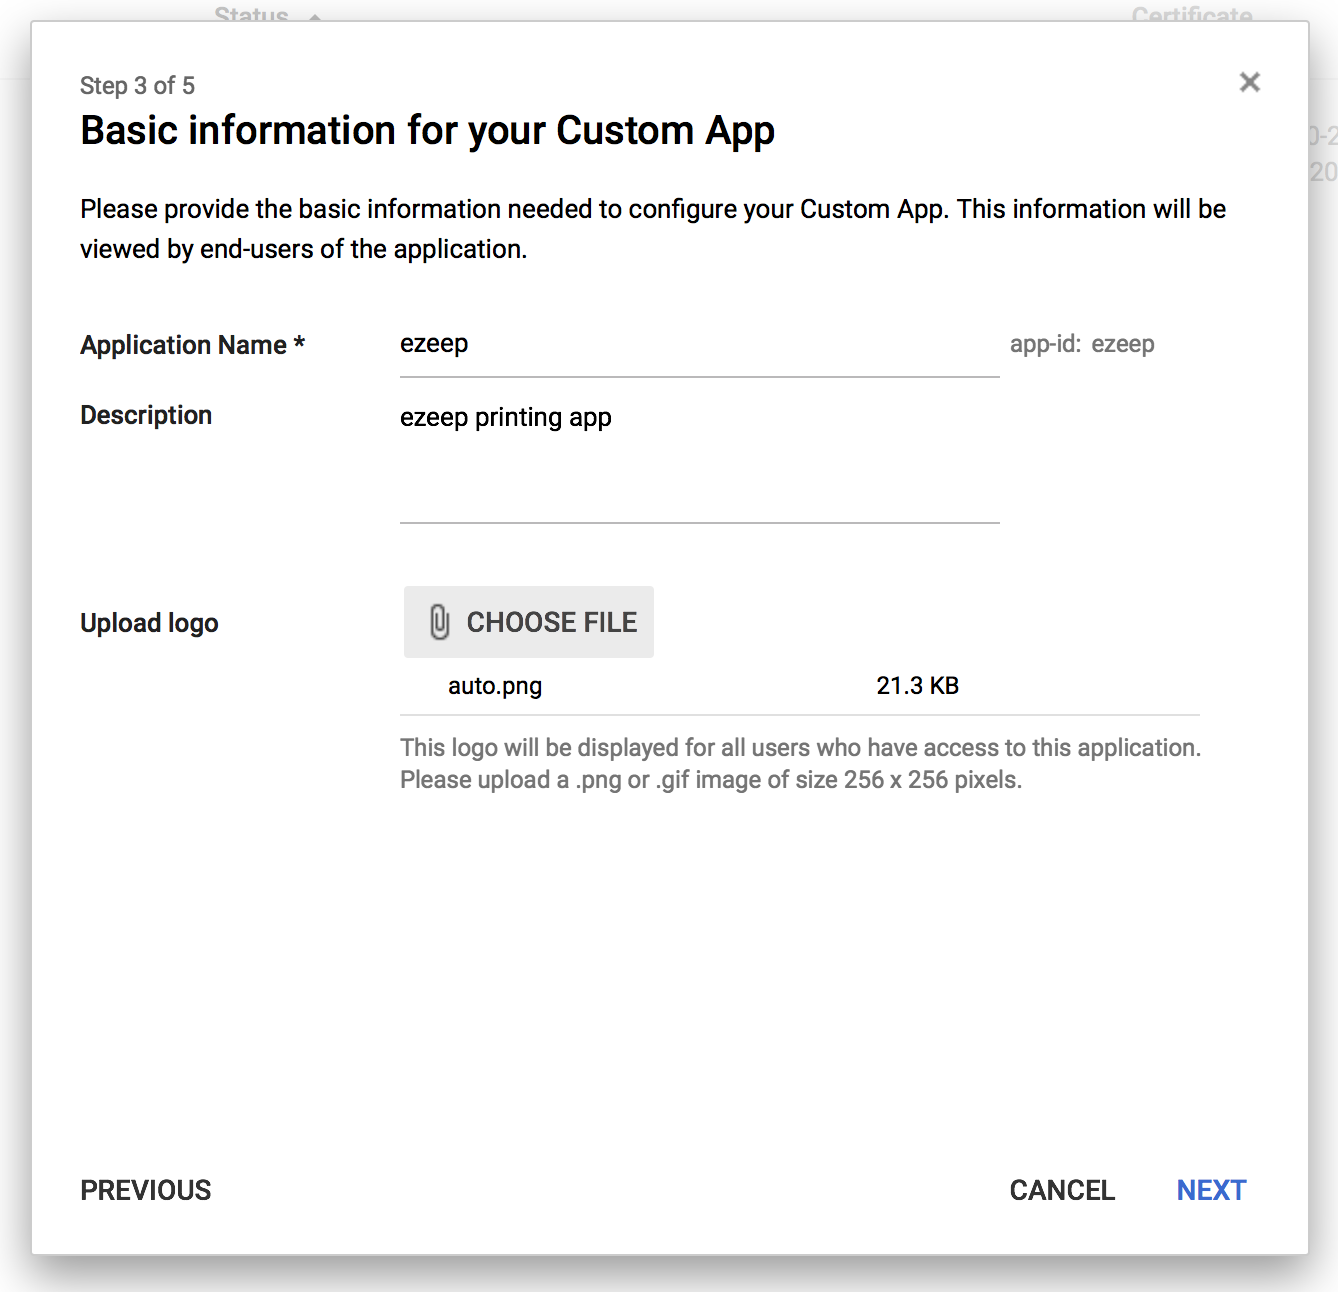 screenshot: Basic information for your Custom App